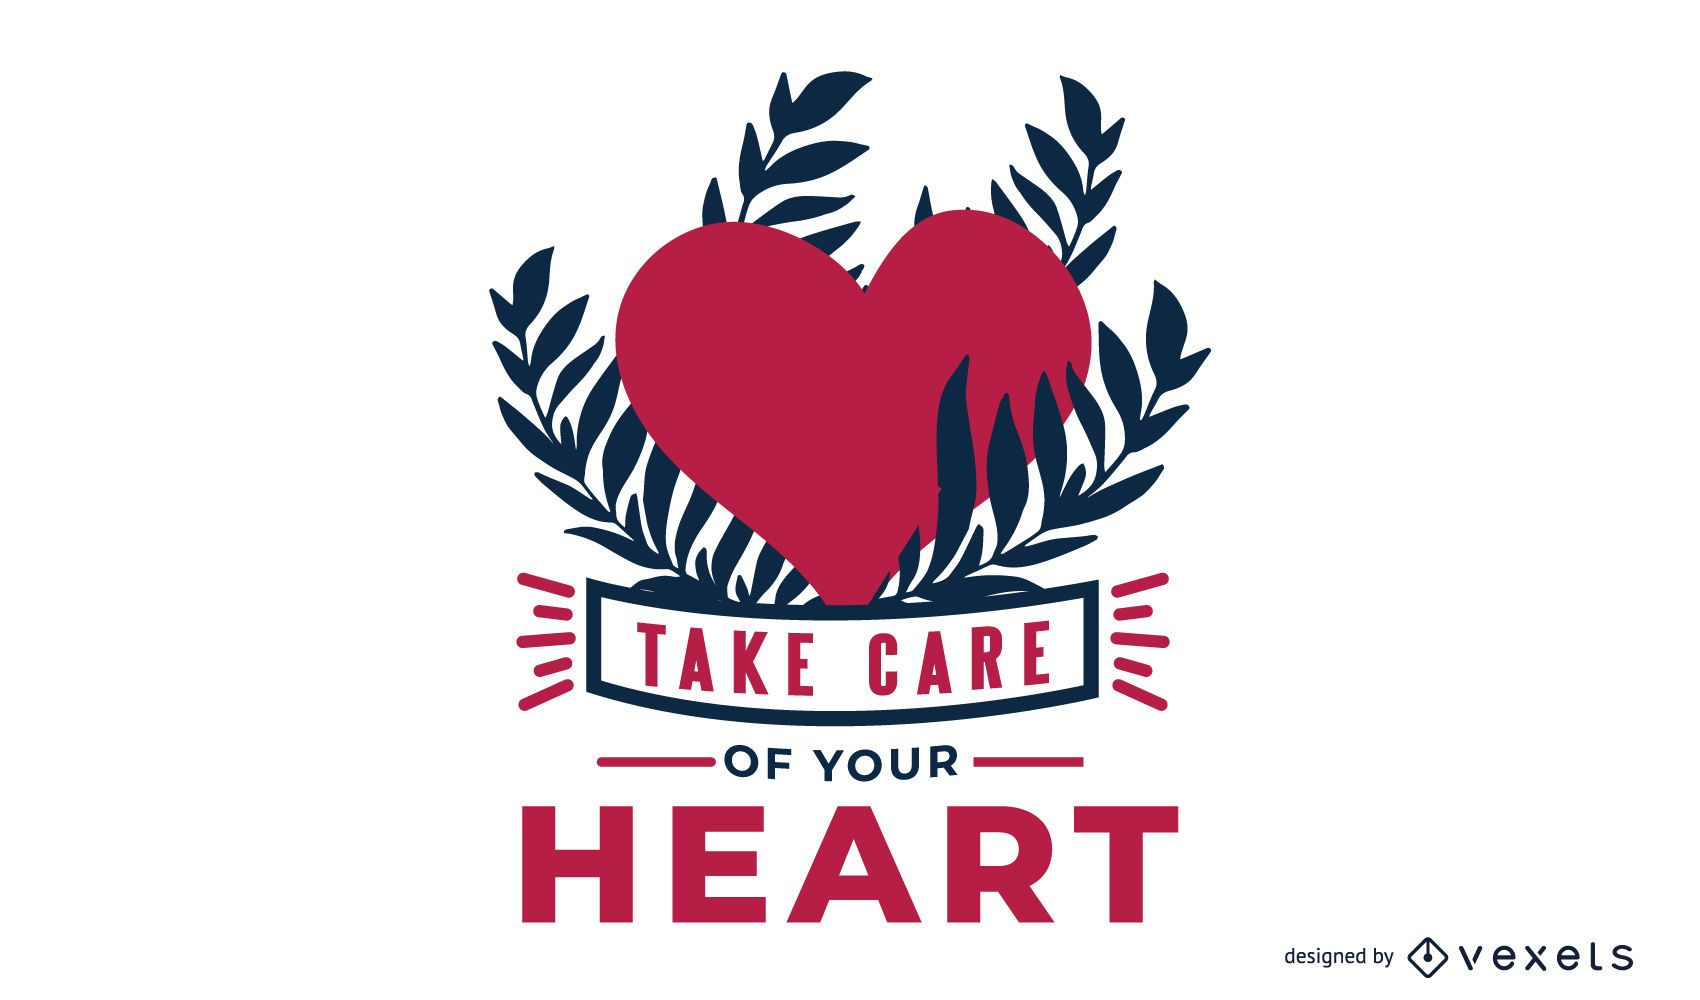 Take Care Of You Heart Message Design